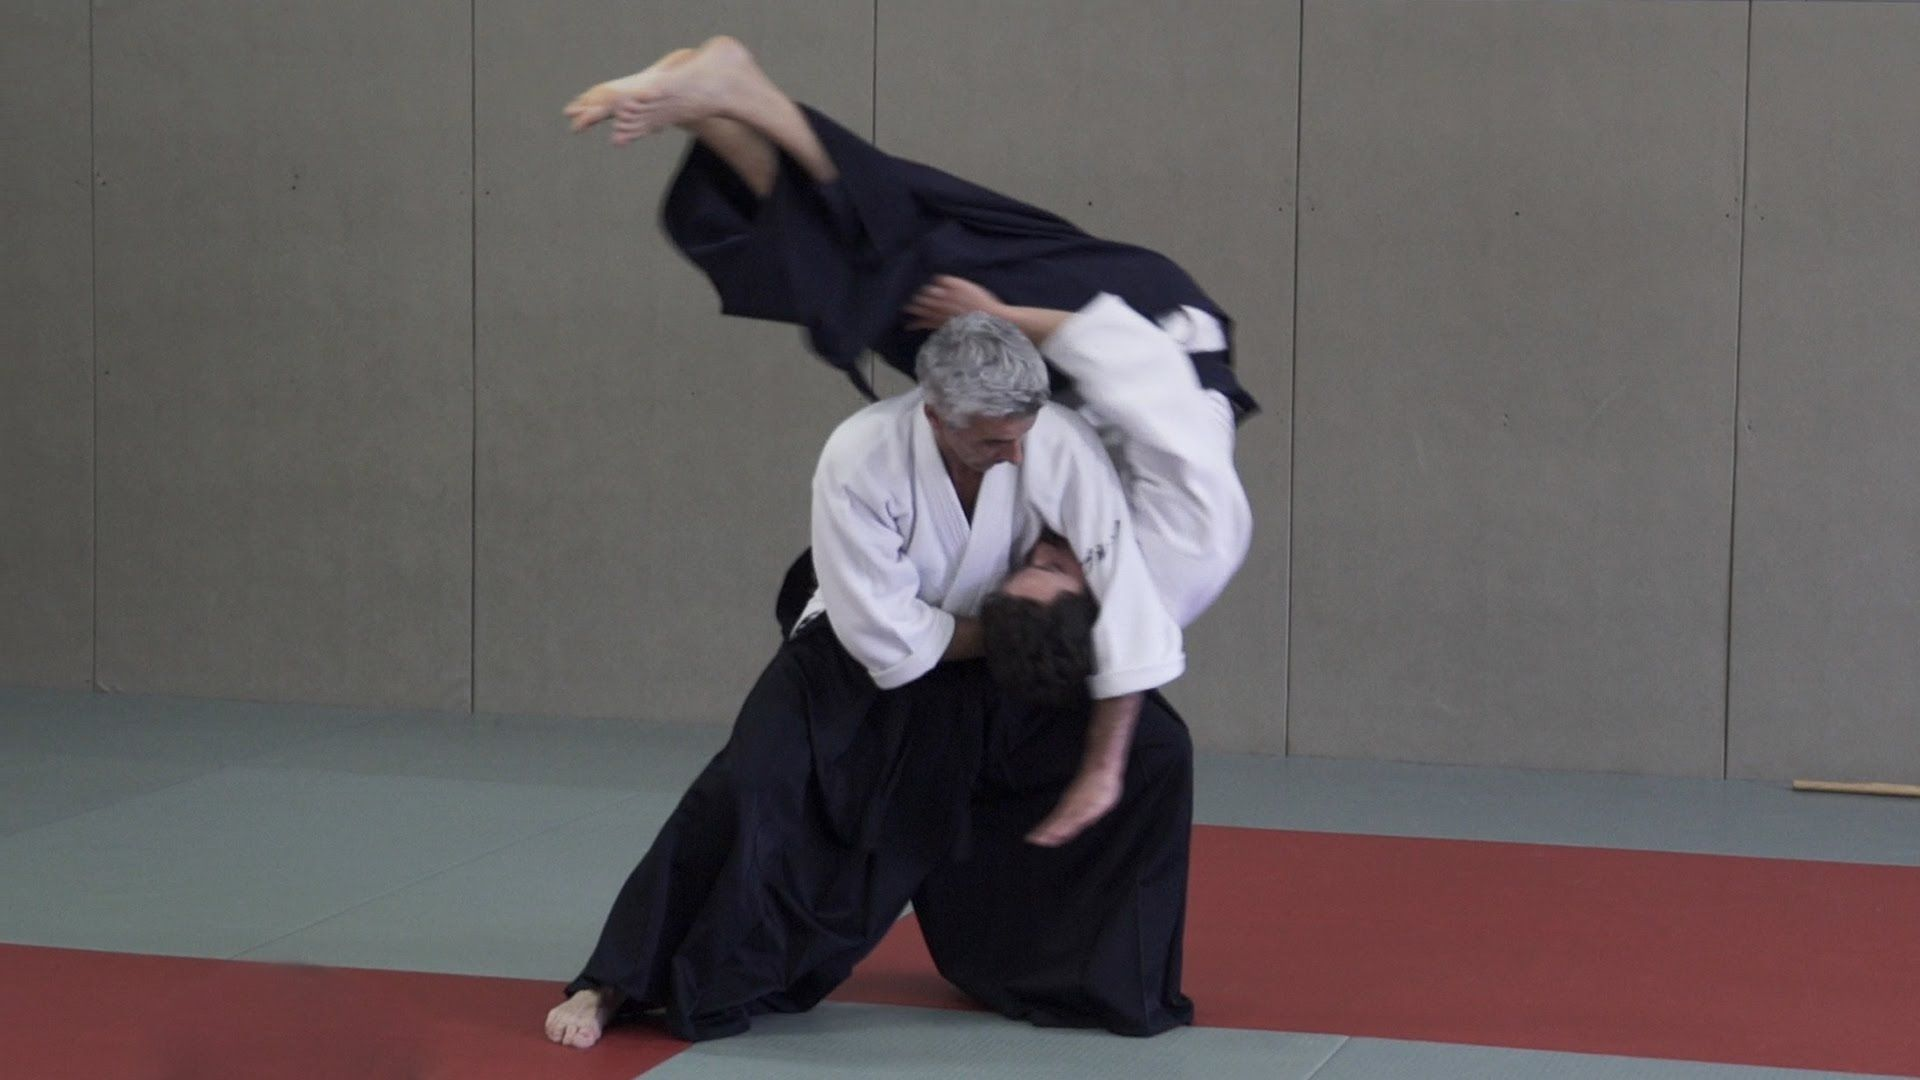 People practicing aikido